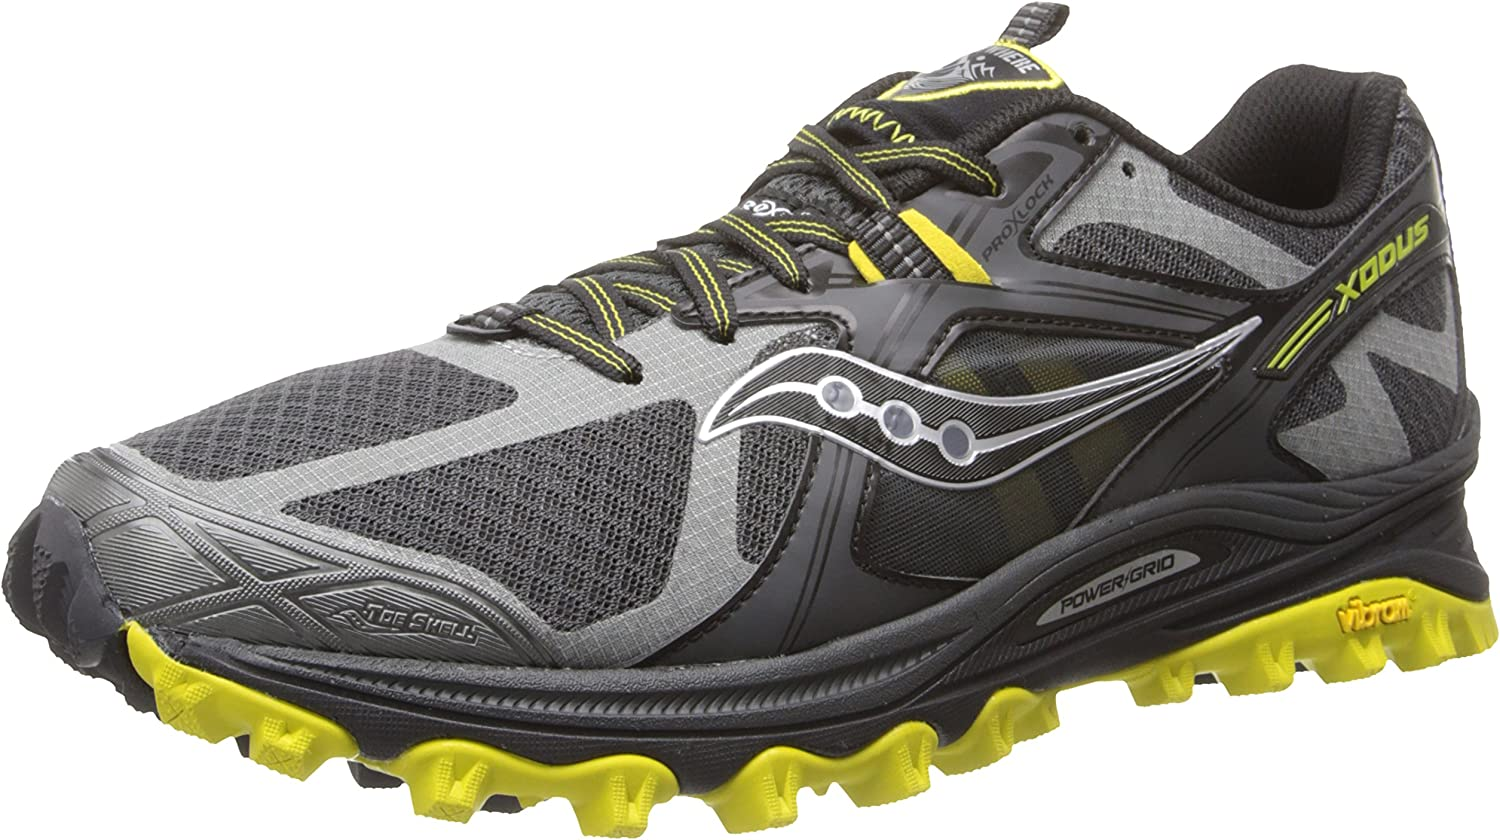 Saucony Men s Xodus 5.0 Trail Running Shoe